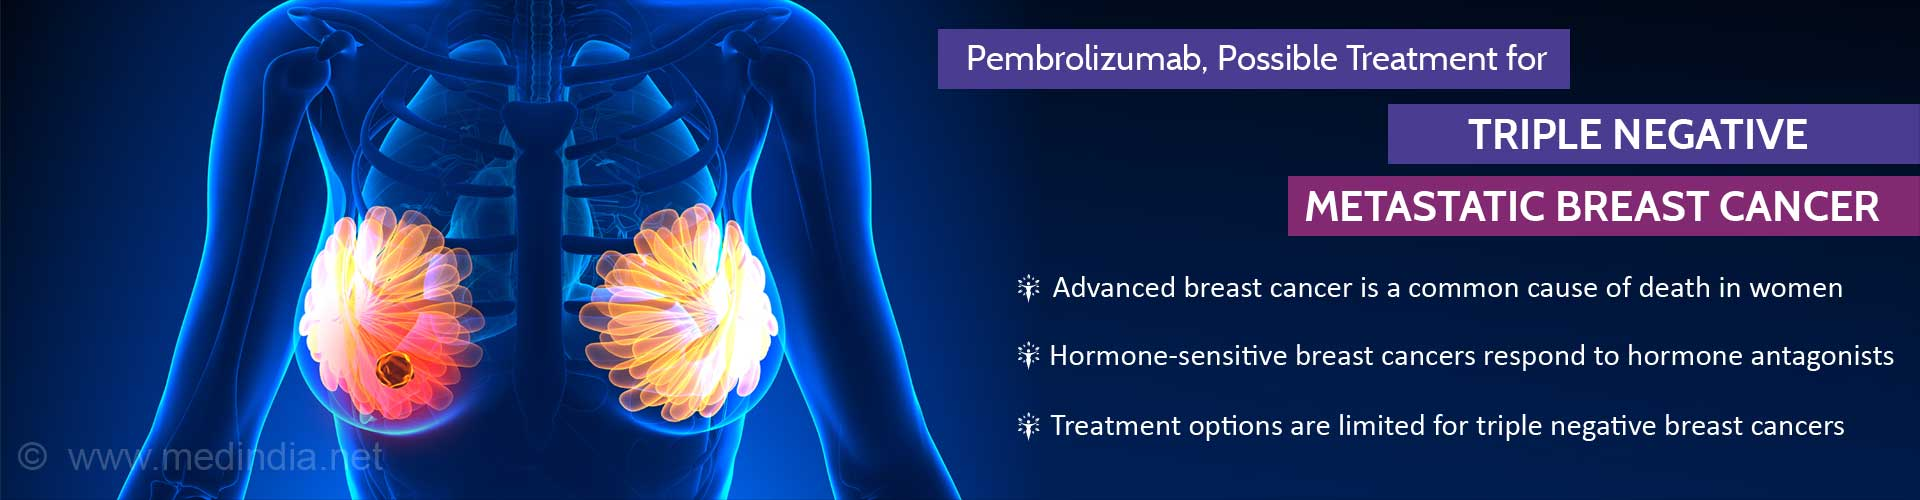 Pembrolizumab in Triple Negative Metastatic Breast Cancer